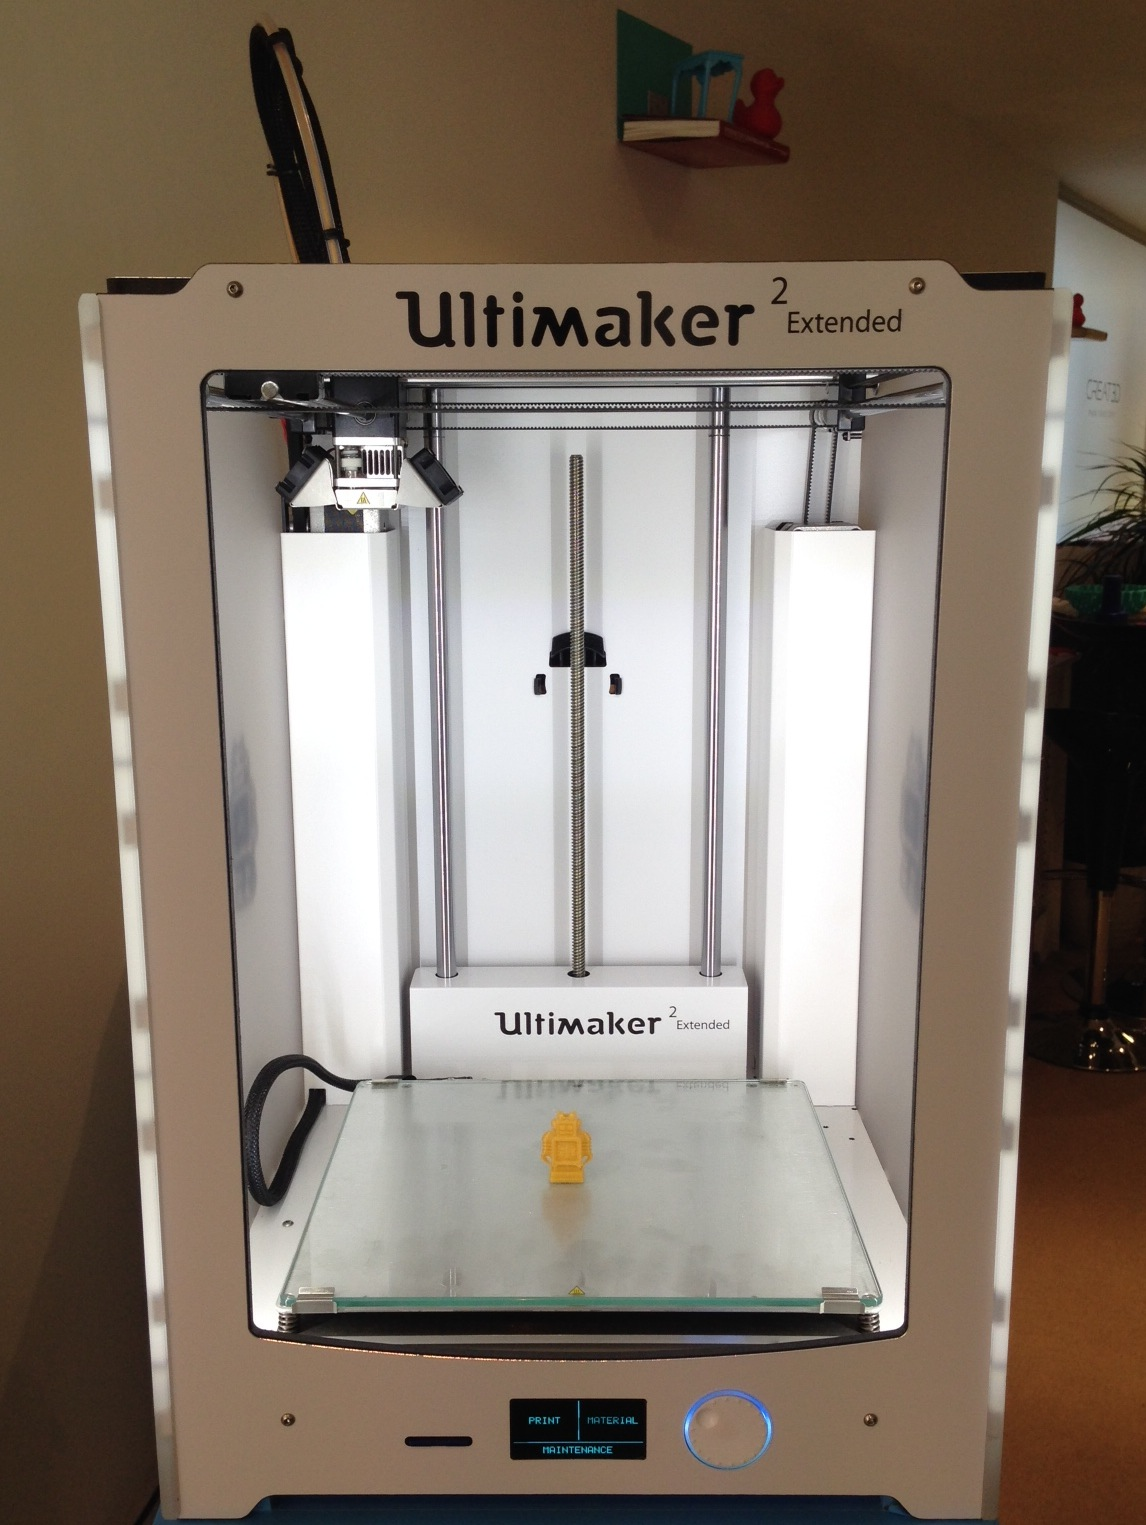 Ultimaker 2 Extended image